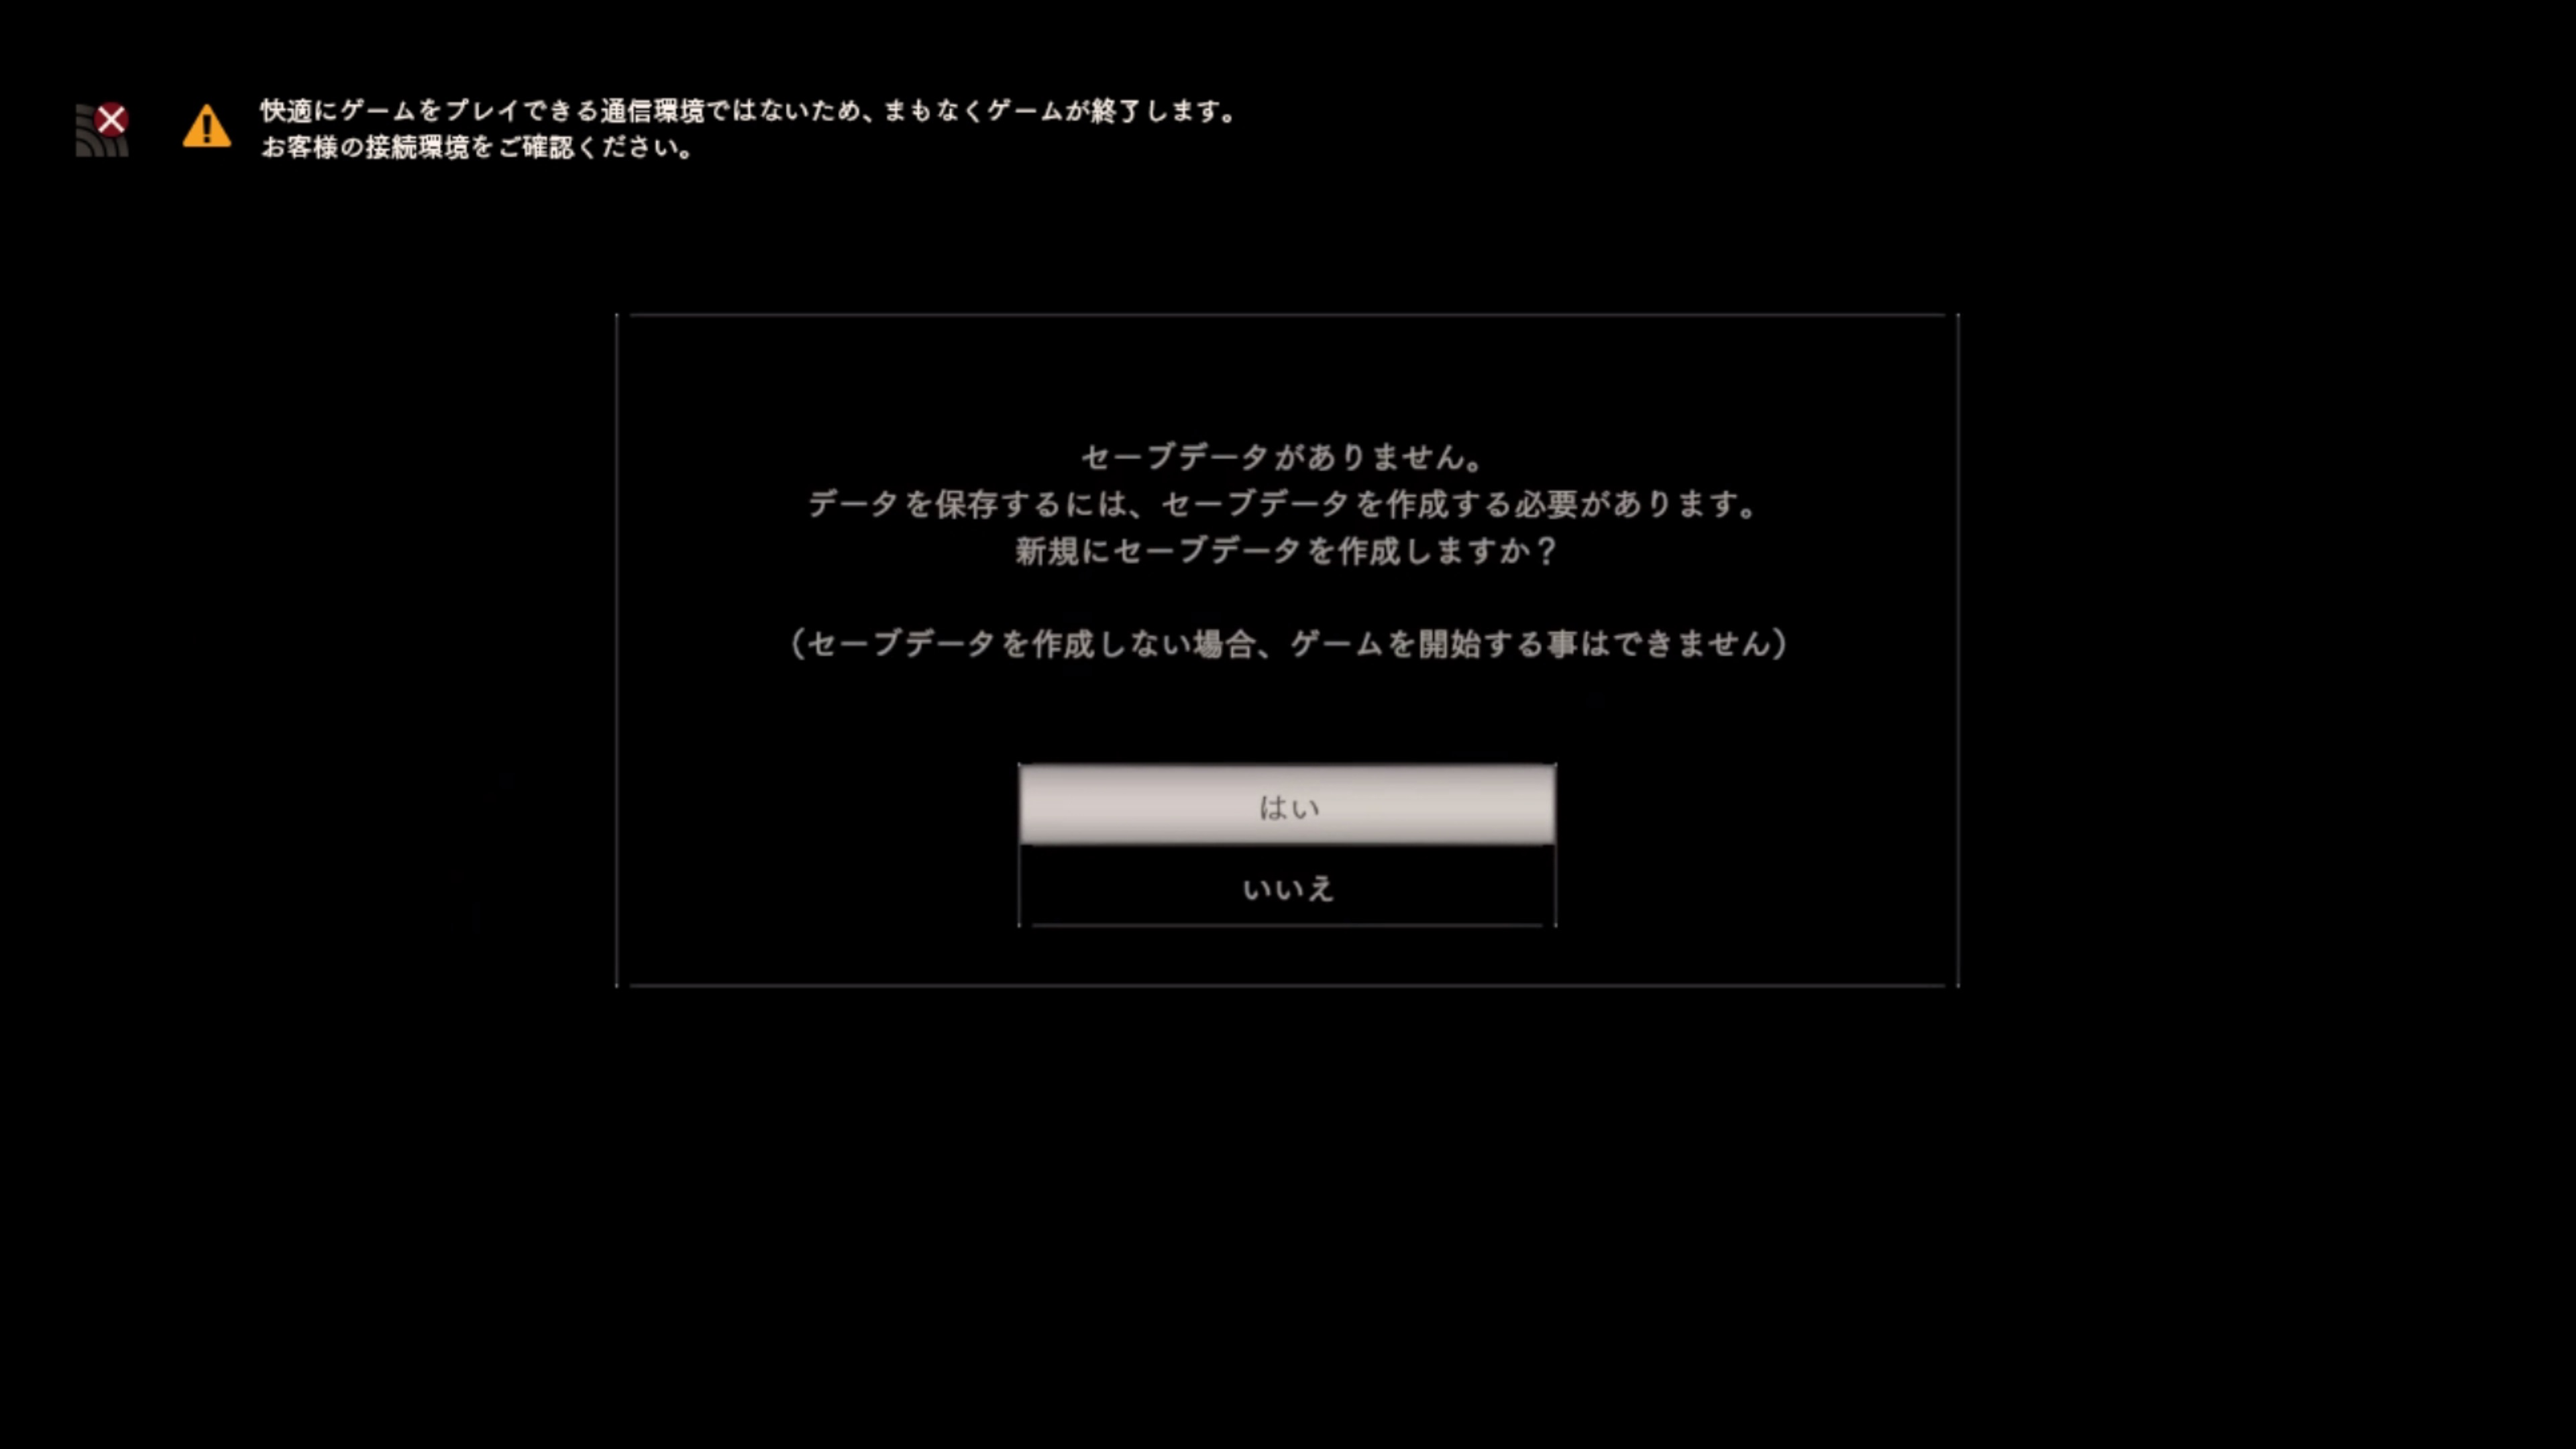 Resident Evil 7 Cloud Version out now on the Japanese eShop